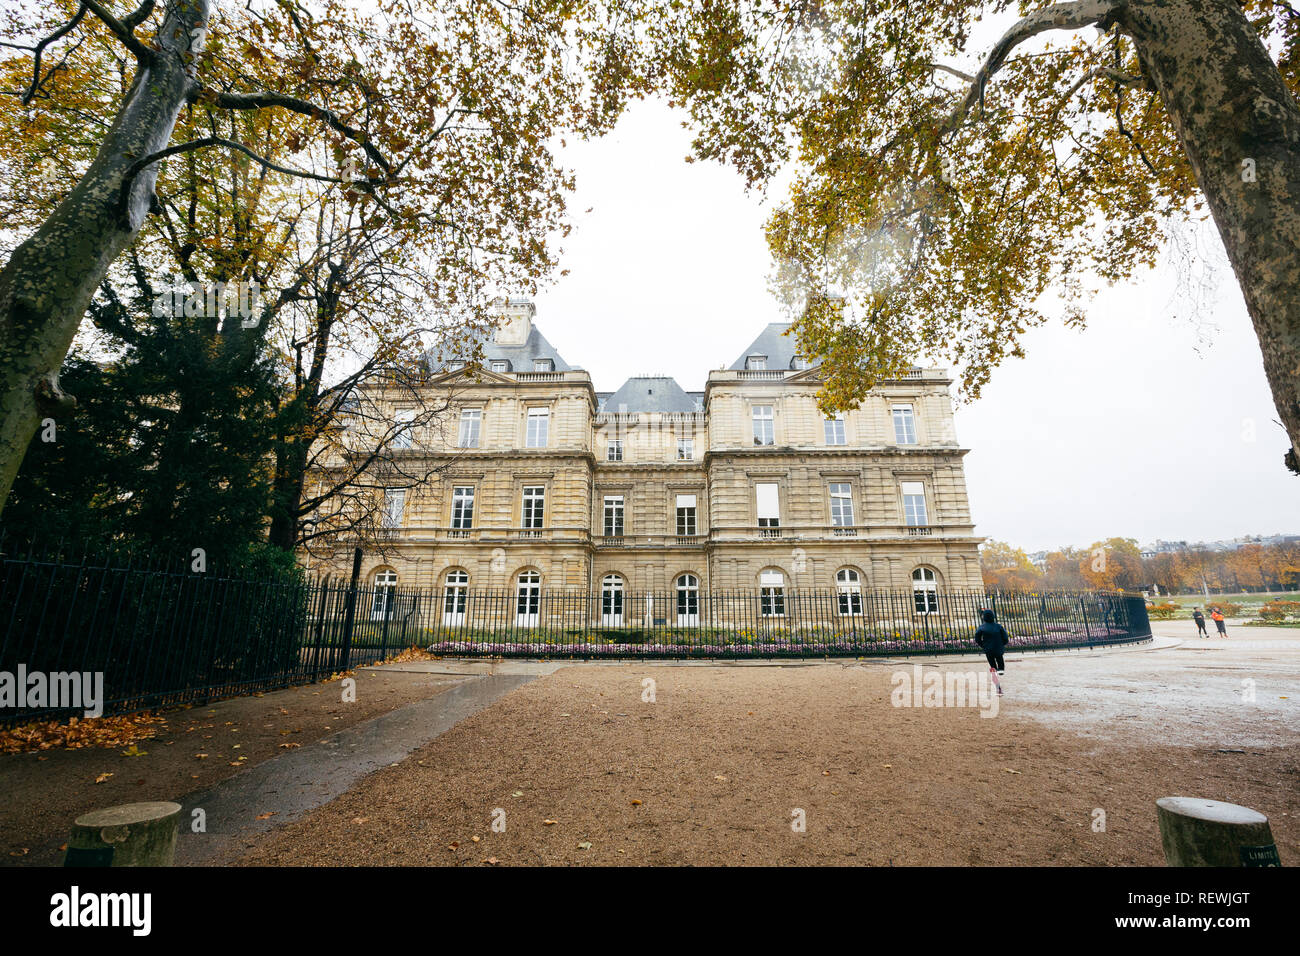 Paris (France) - Luxembourg Palace in Luxembourg Garden (Jardin de Luxembourg) Stock Photo